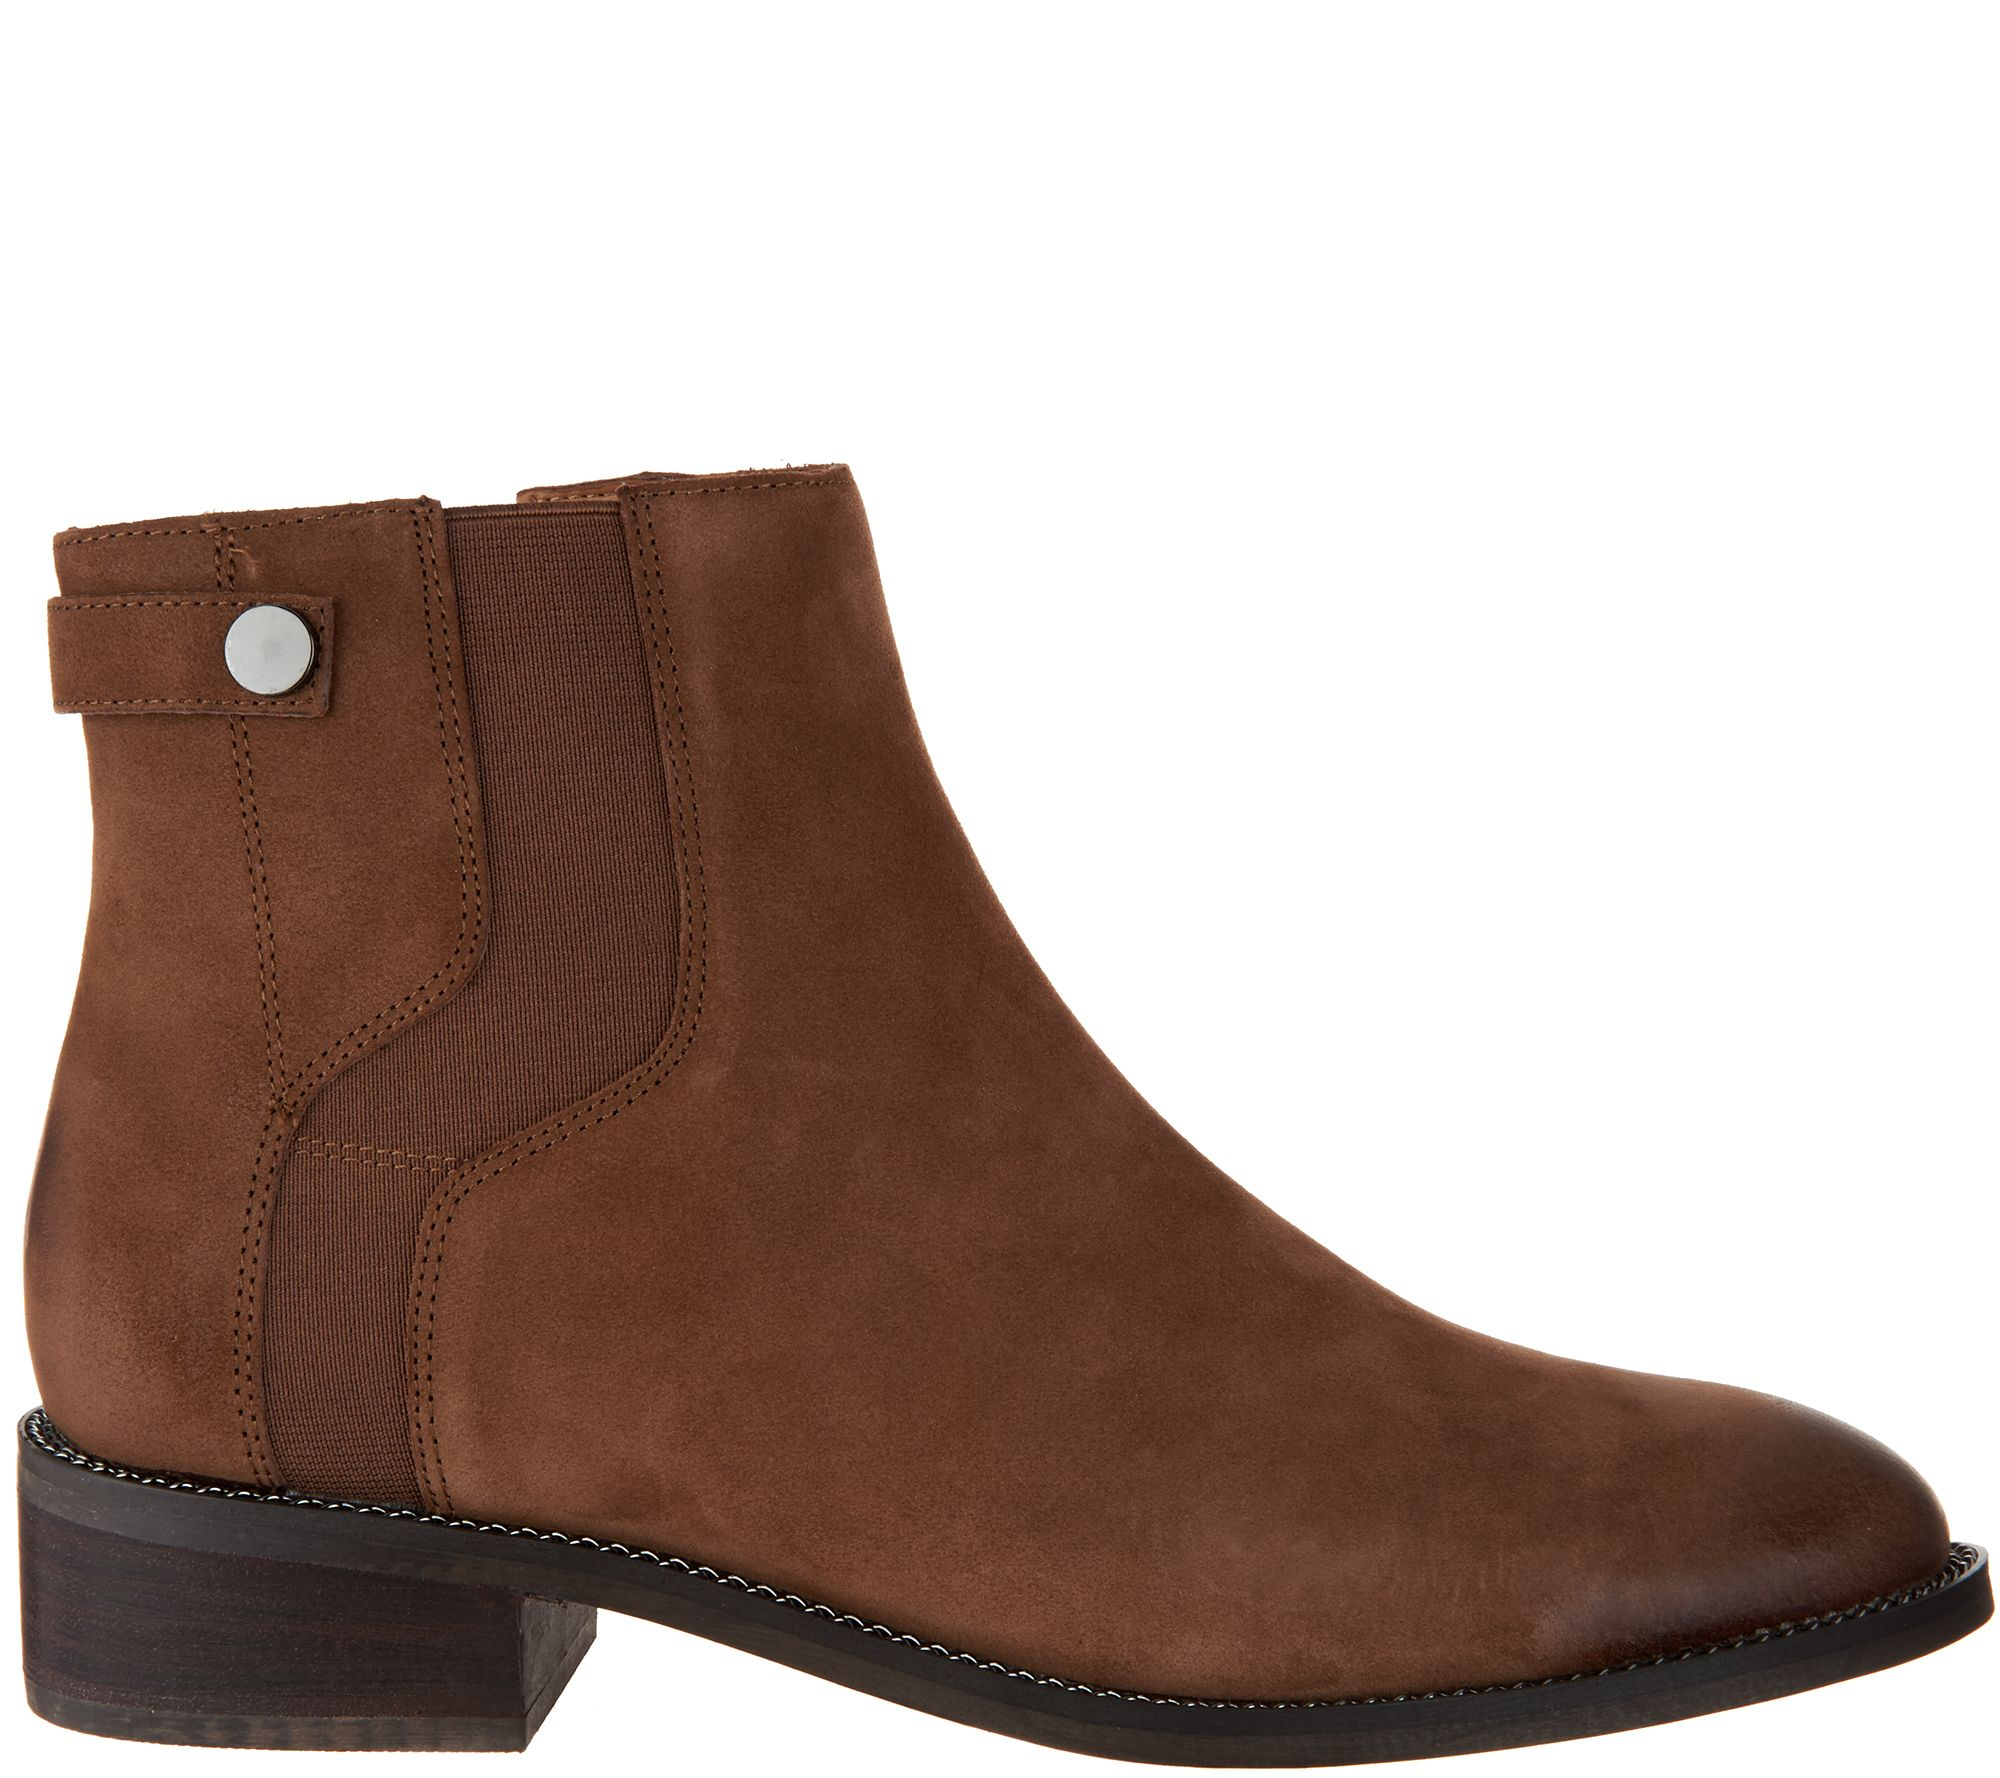 2c54238b1880 Franco Sarto Leather Ankle Boots - Brandy - Page 1 — QVC.com